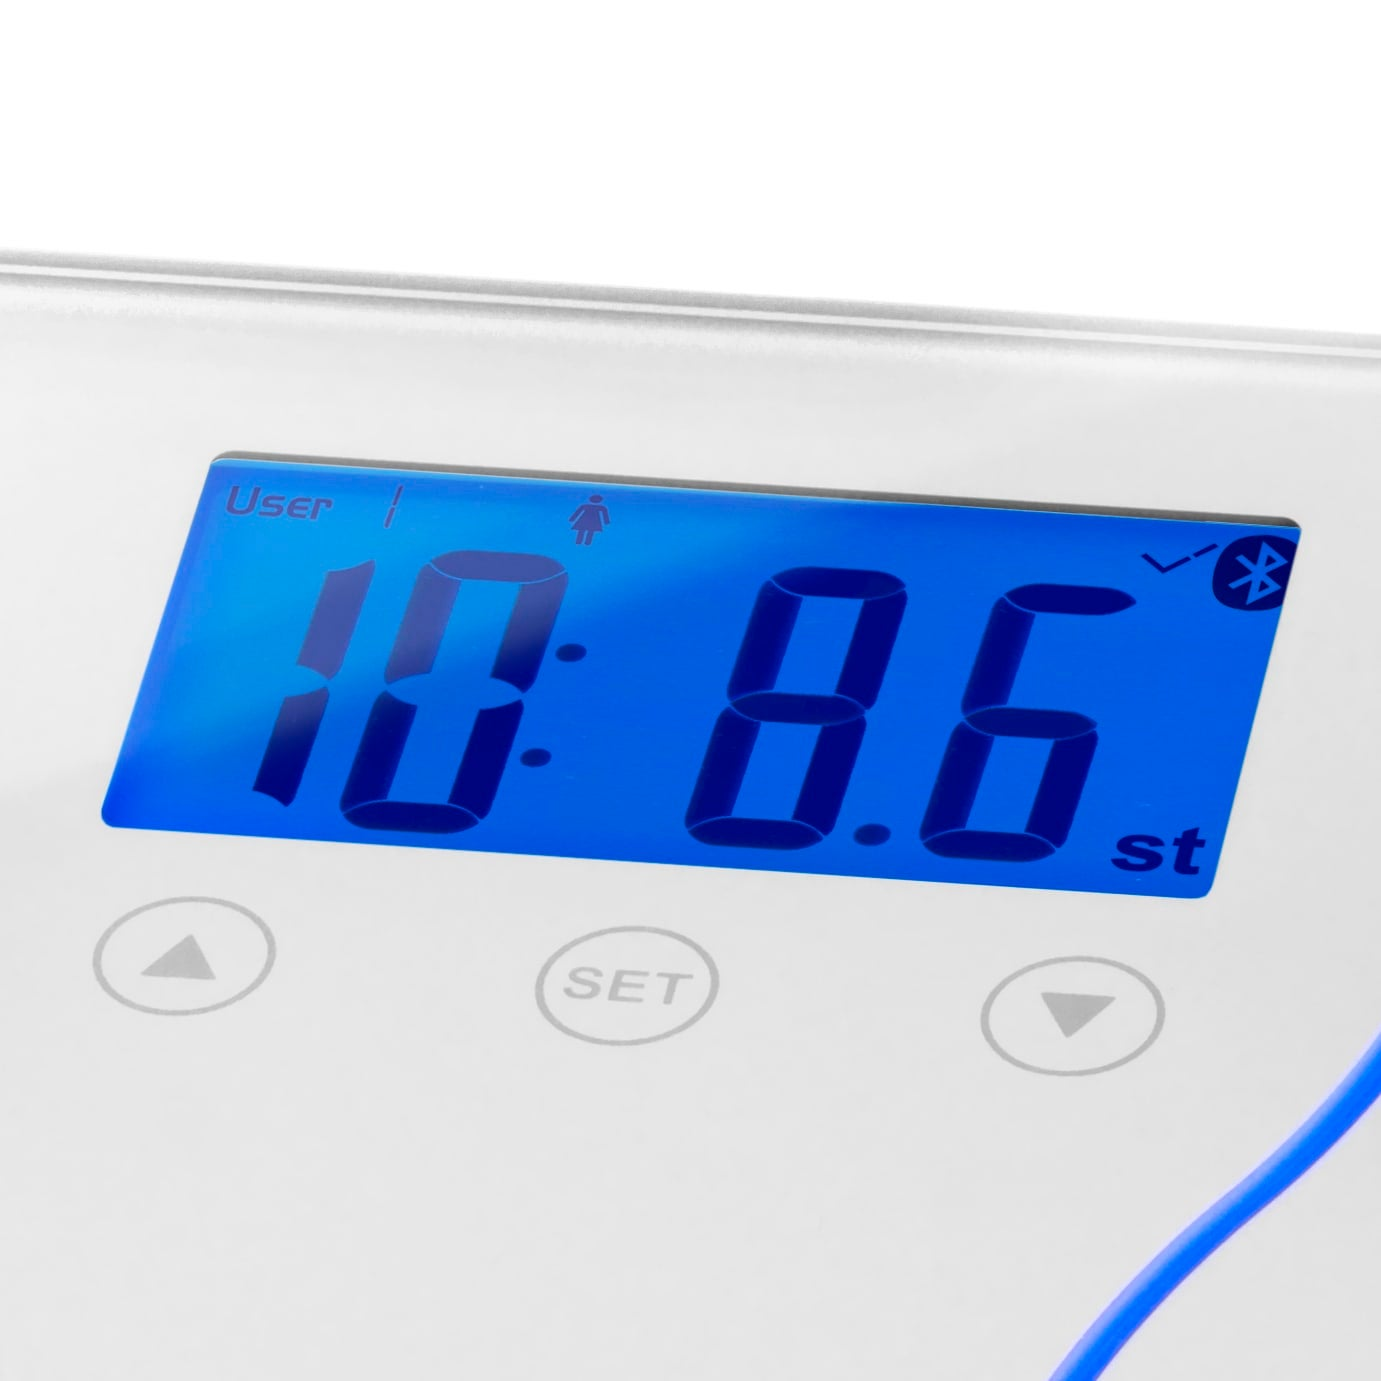 Bluetooth Scales display